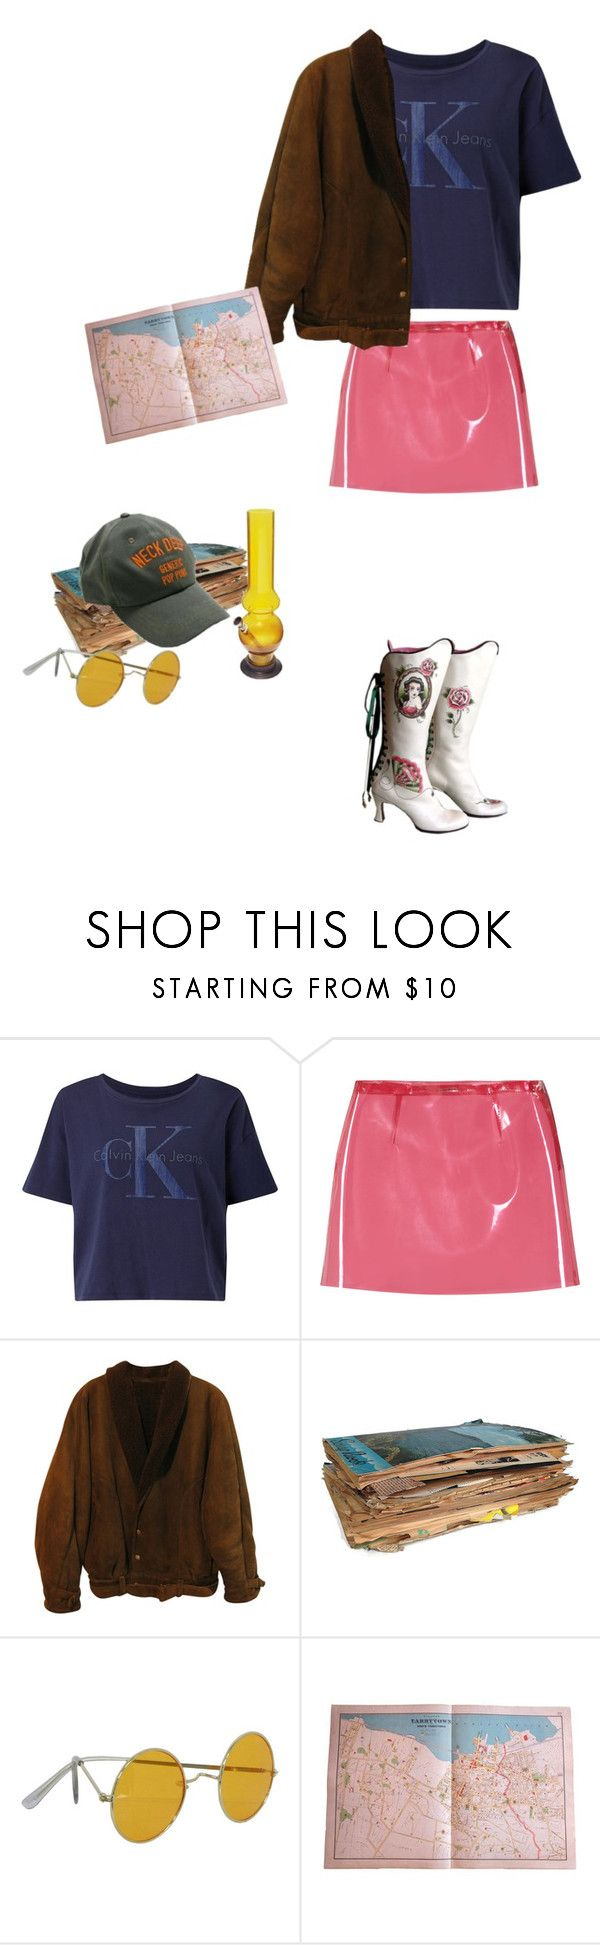 """""""I'm always tired"""" by asterplaster ❤ liked on Polyvore featuring Calvin Klein, Miu Miu and Zoot"""